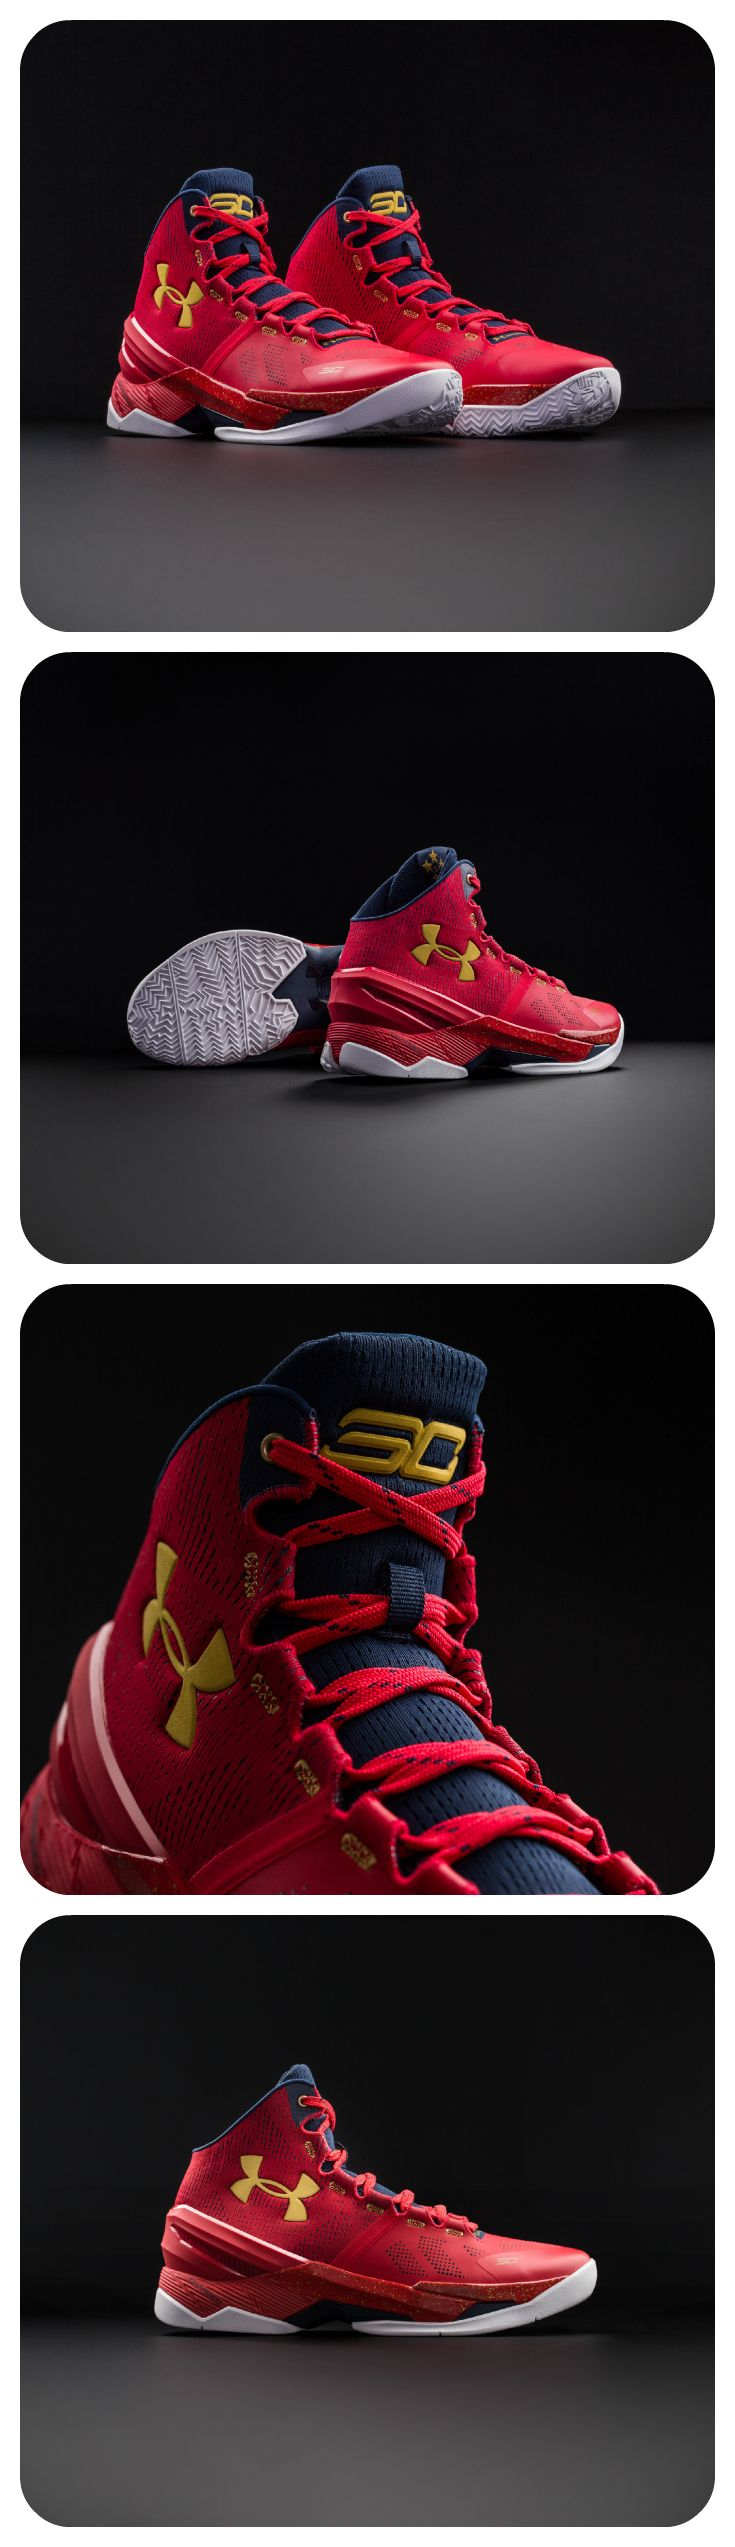 Under Armour Curry 2.5 China Tour